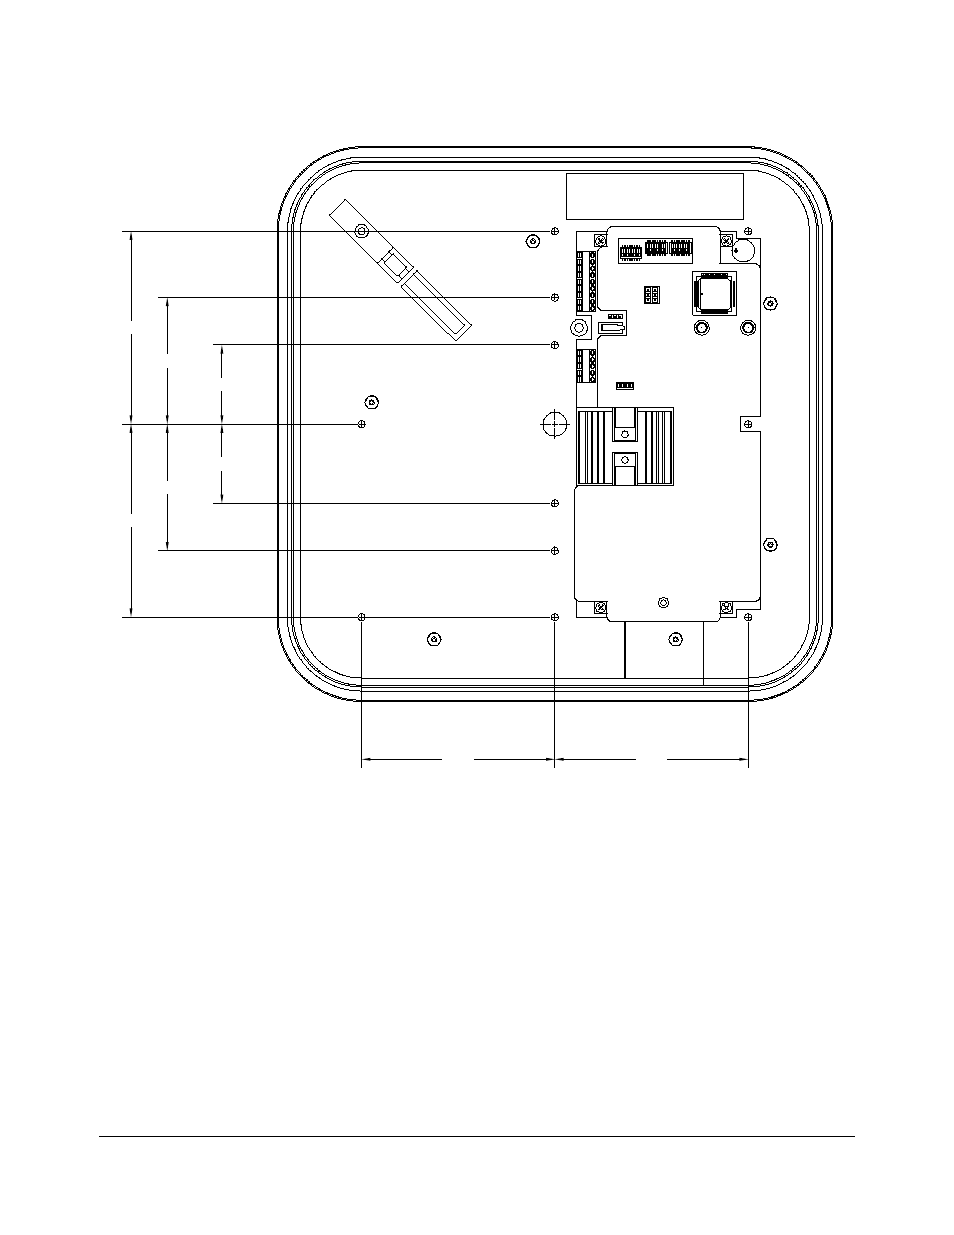 How To Install A Hid Ballast Manual Guide